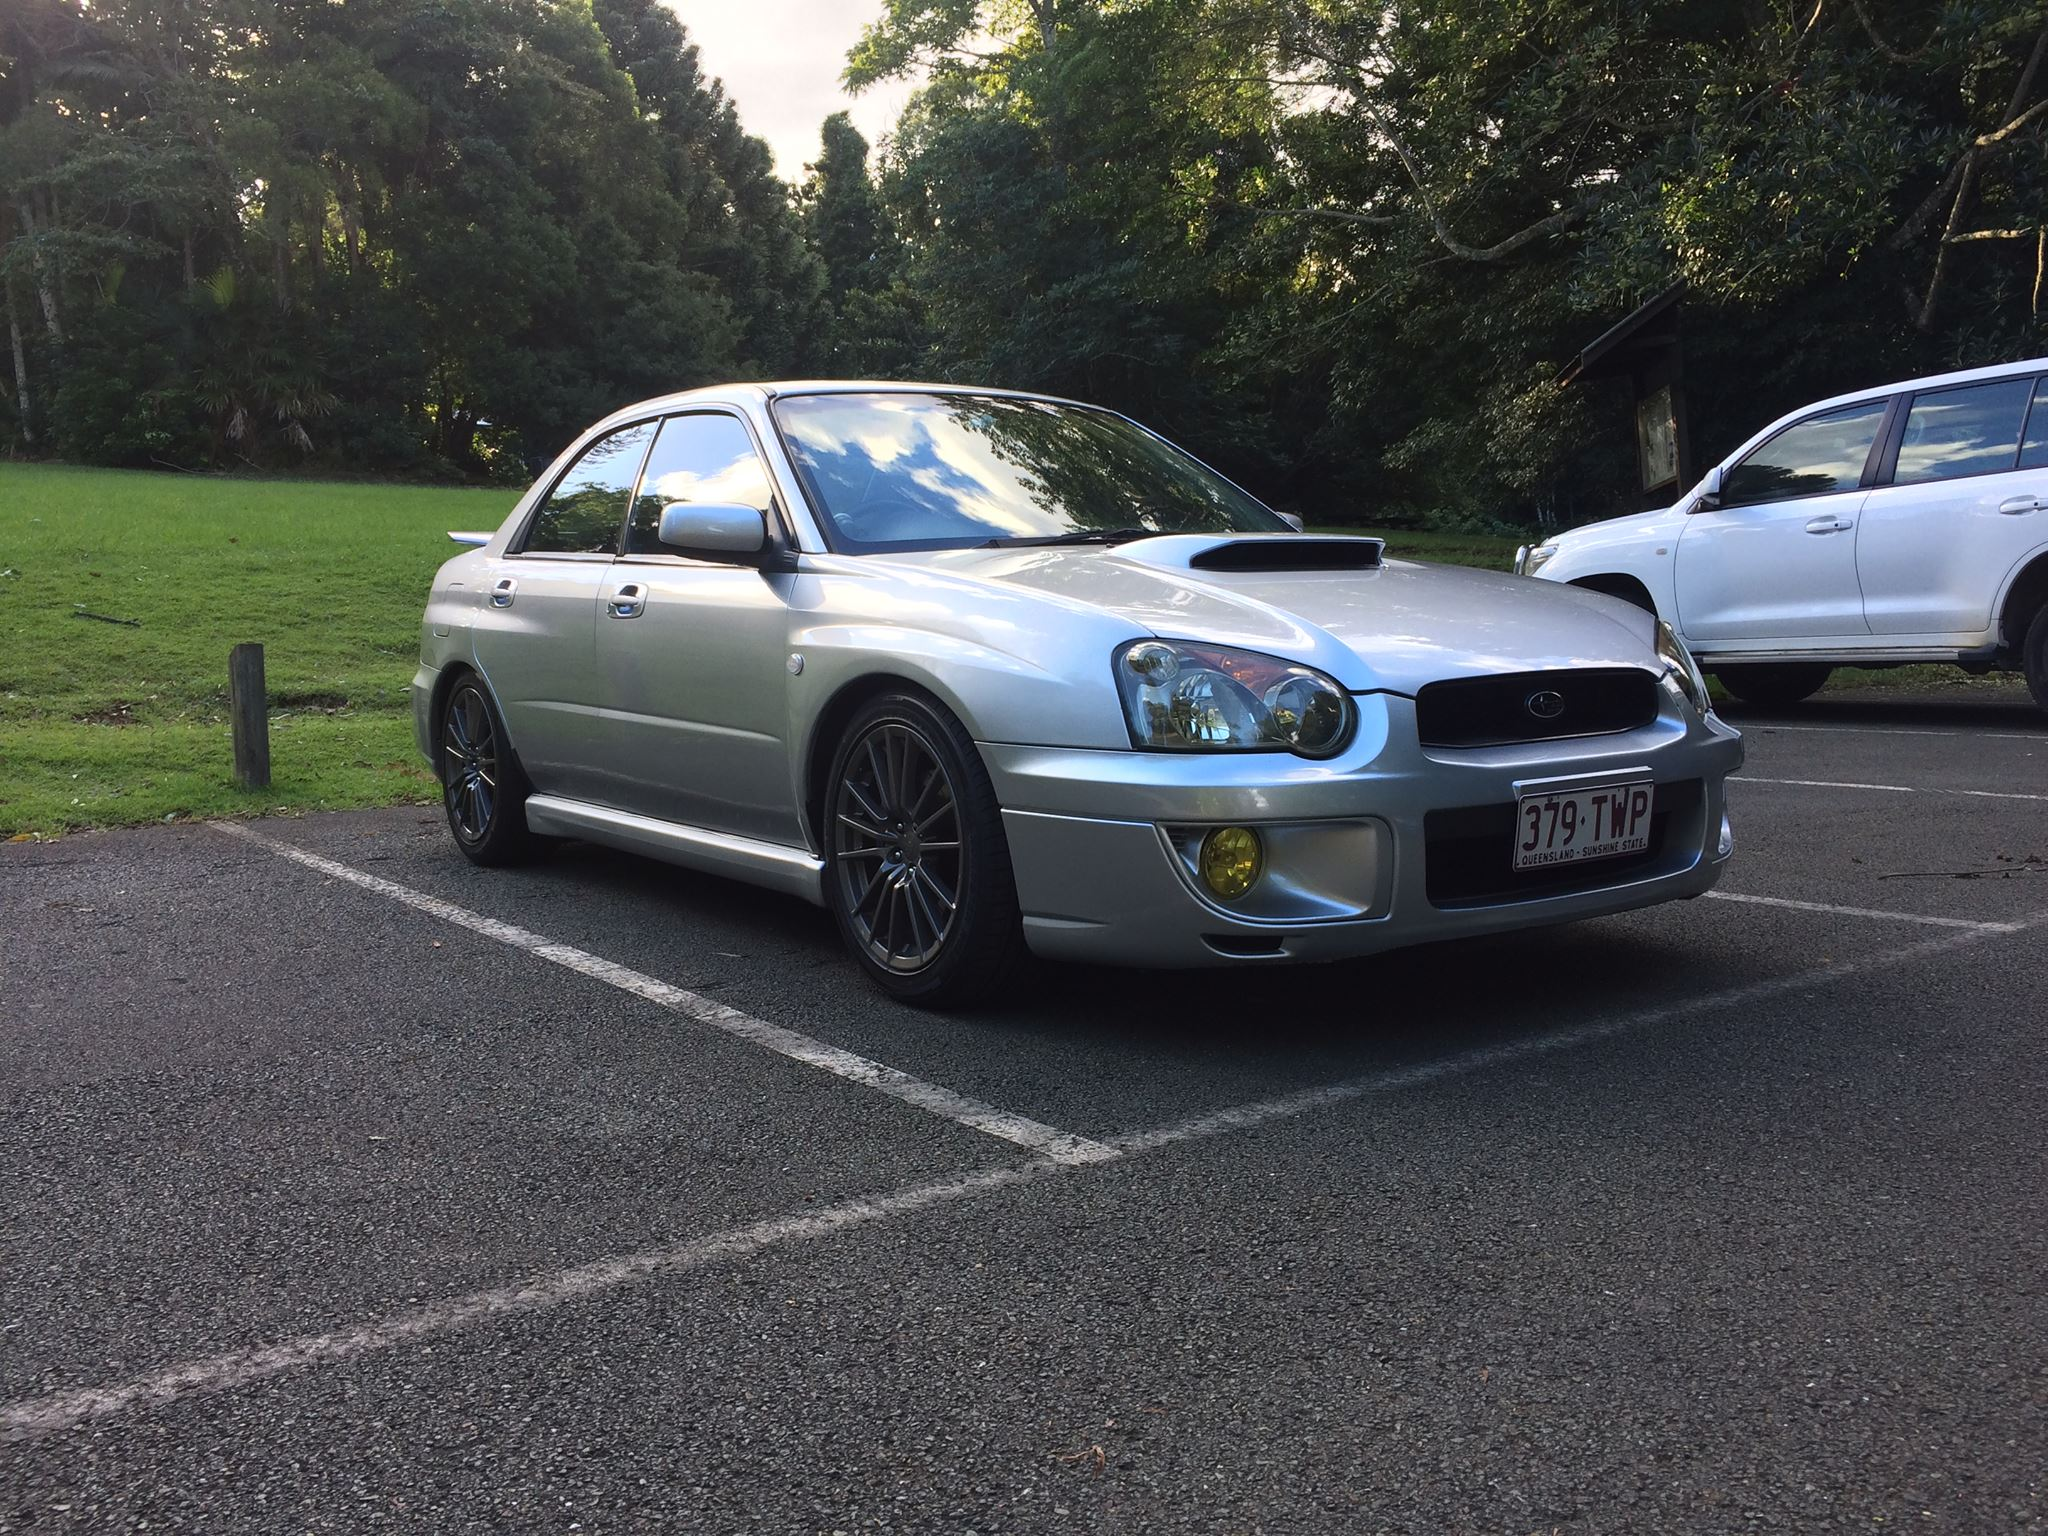 2003 subaru impreza wrx awd my04 car sales qld brisbane north 3034847. Black Bedroom Furniture Sets. Home Design Ideas